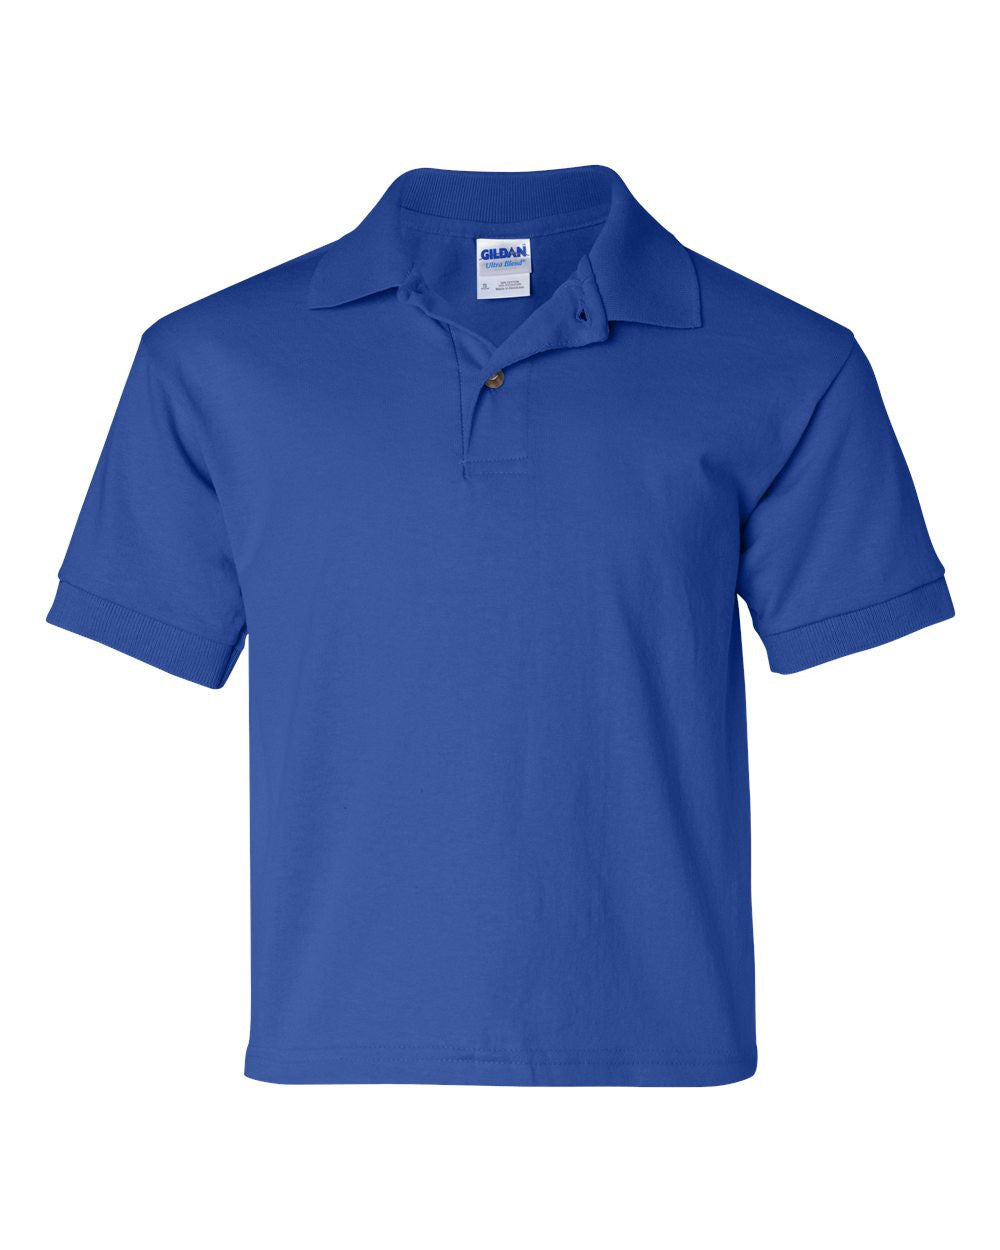 3 pack : Gildan Youth Polos Blend - onestoppolos.com